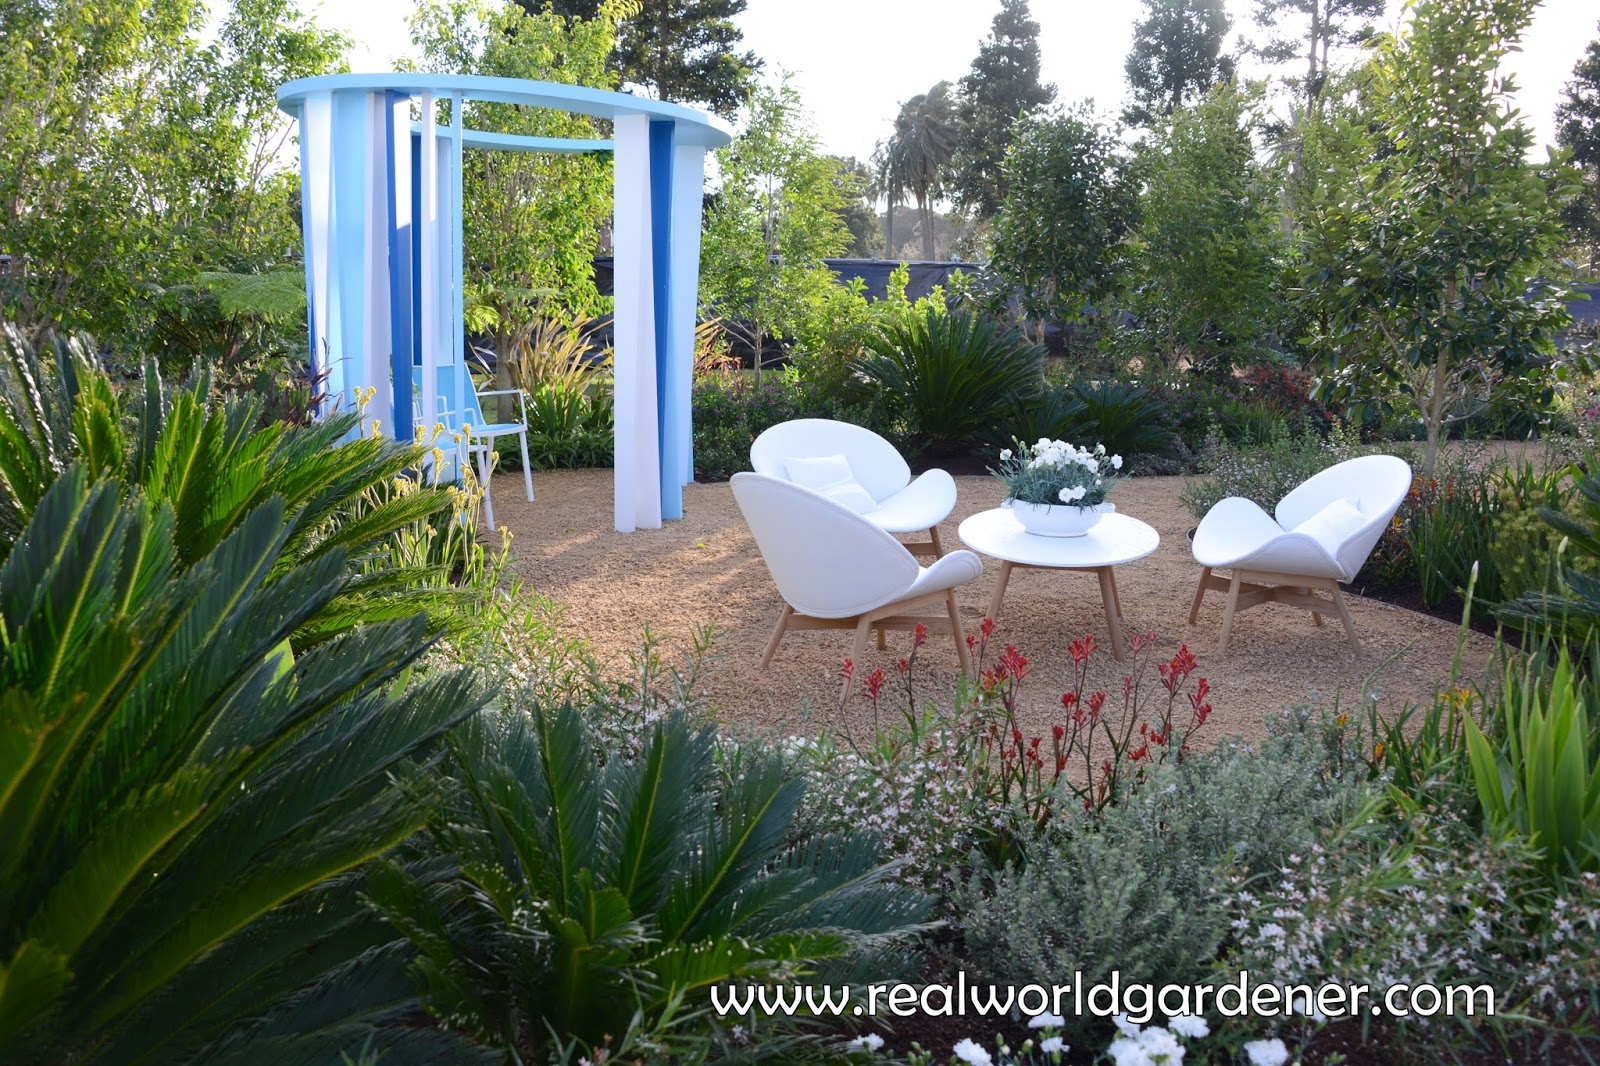 Real World Gardener Creating Contemporary Gardens part 1 in Design ...